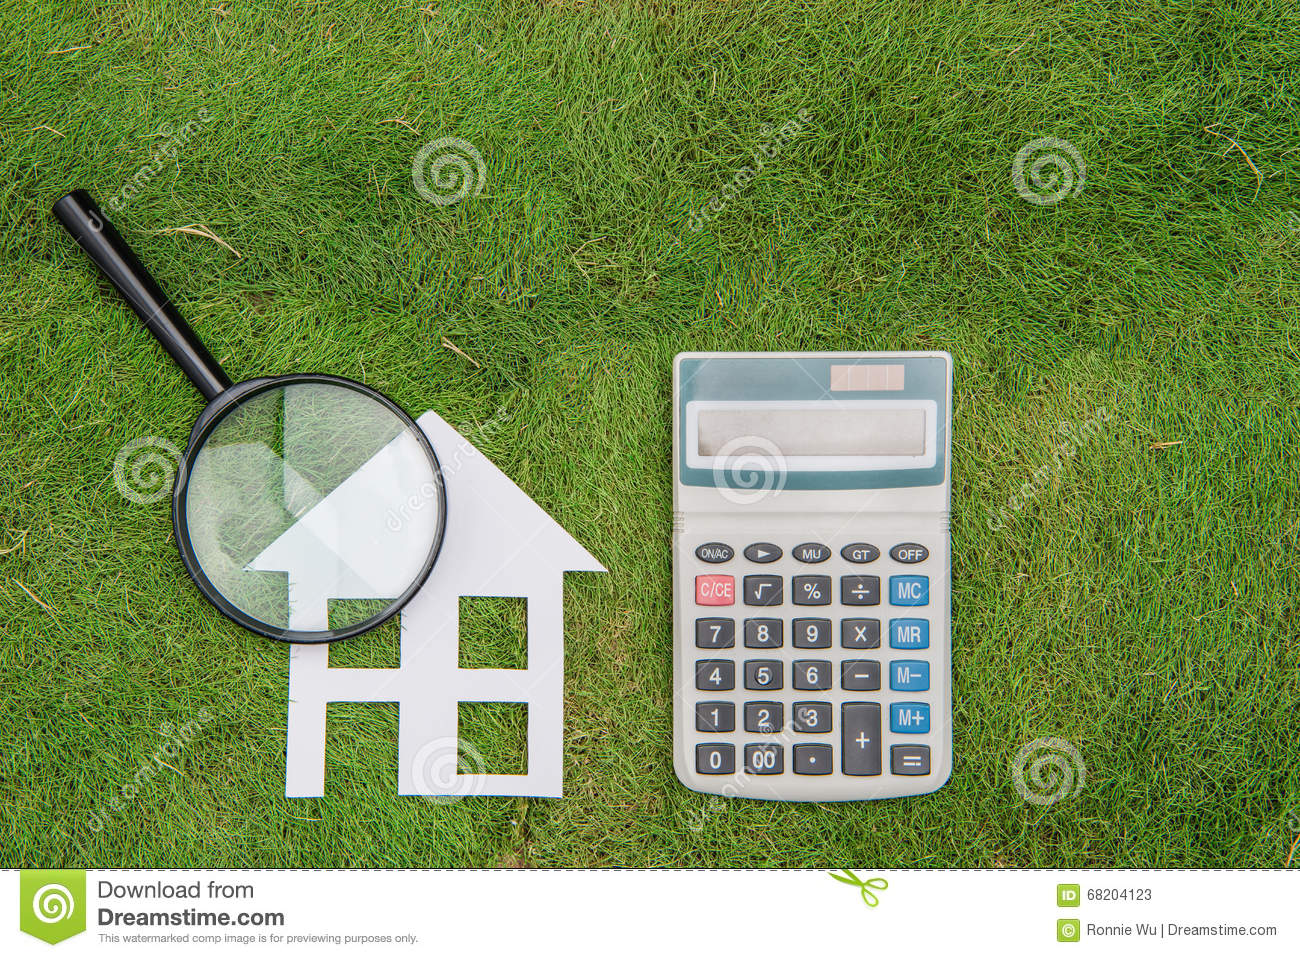 Buy green building house mortgage calculations calculator for Build a house calculator